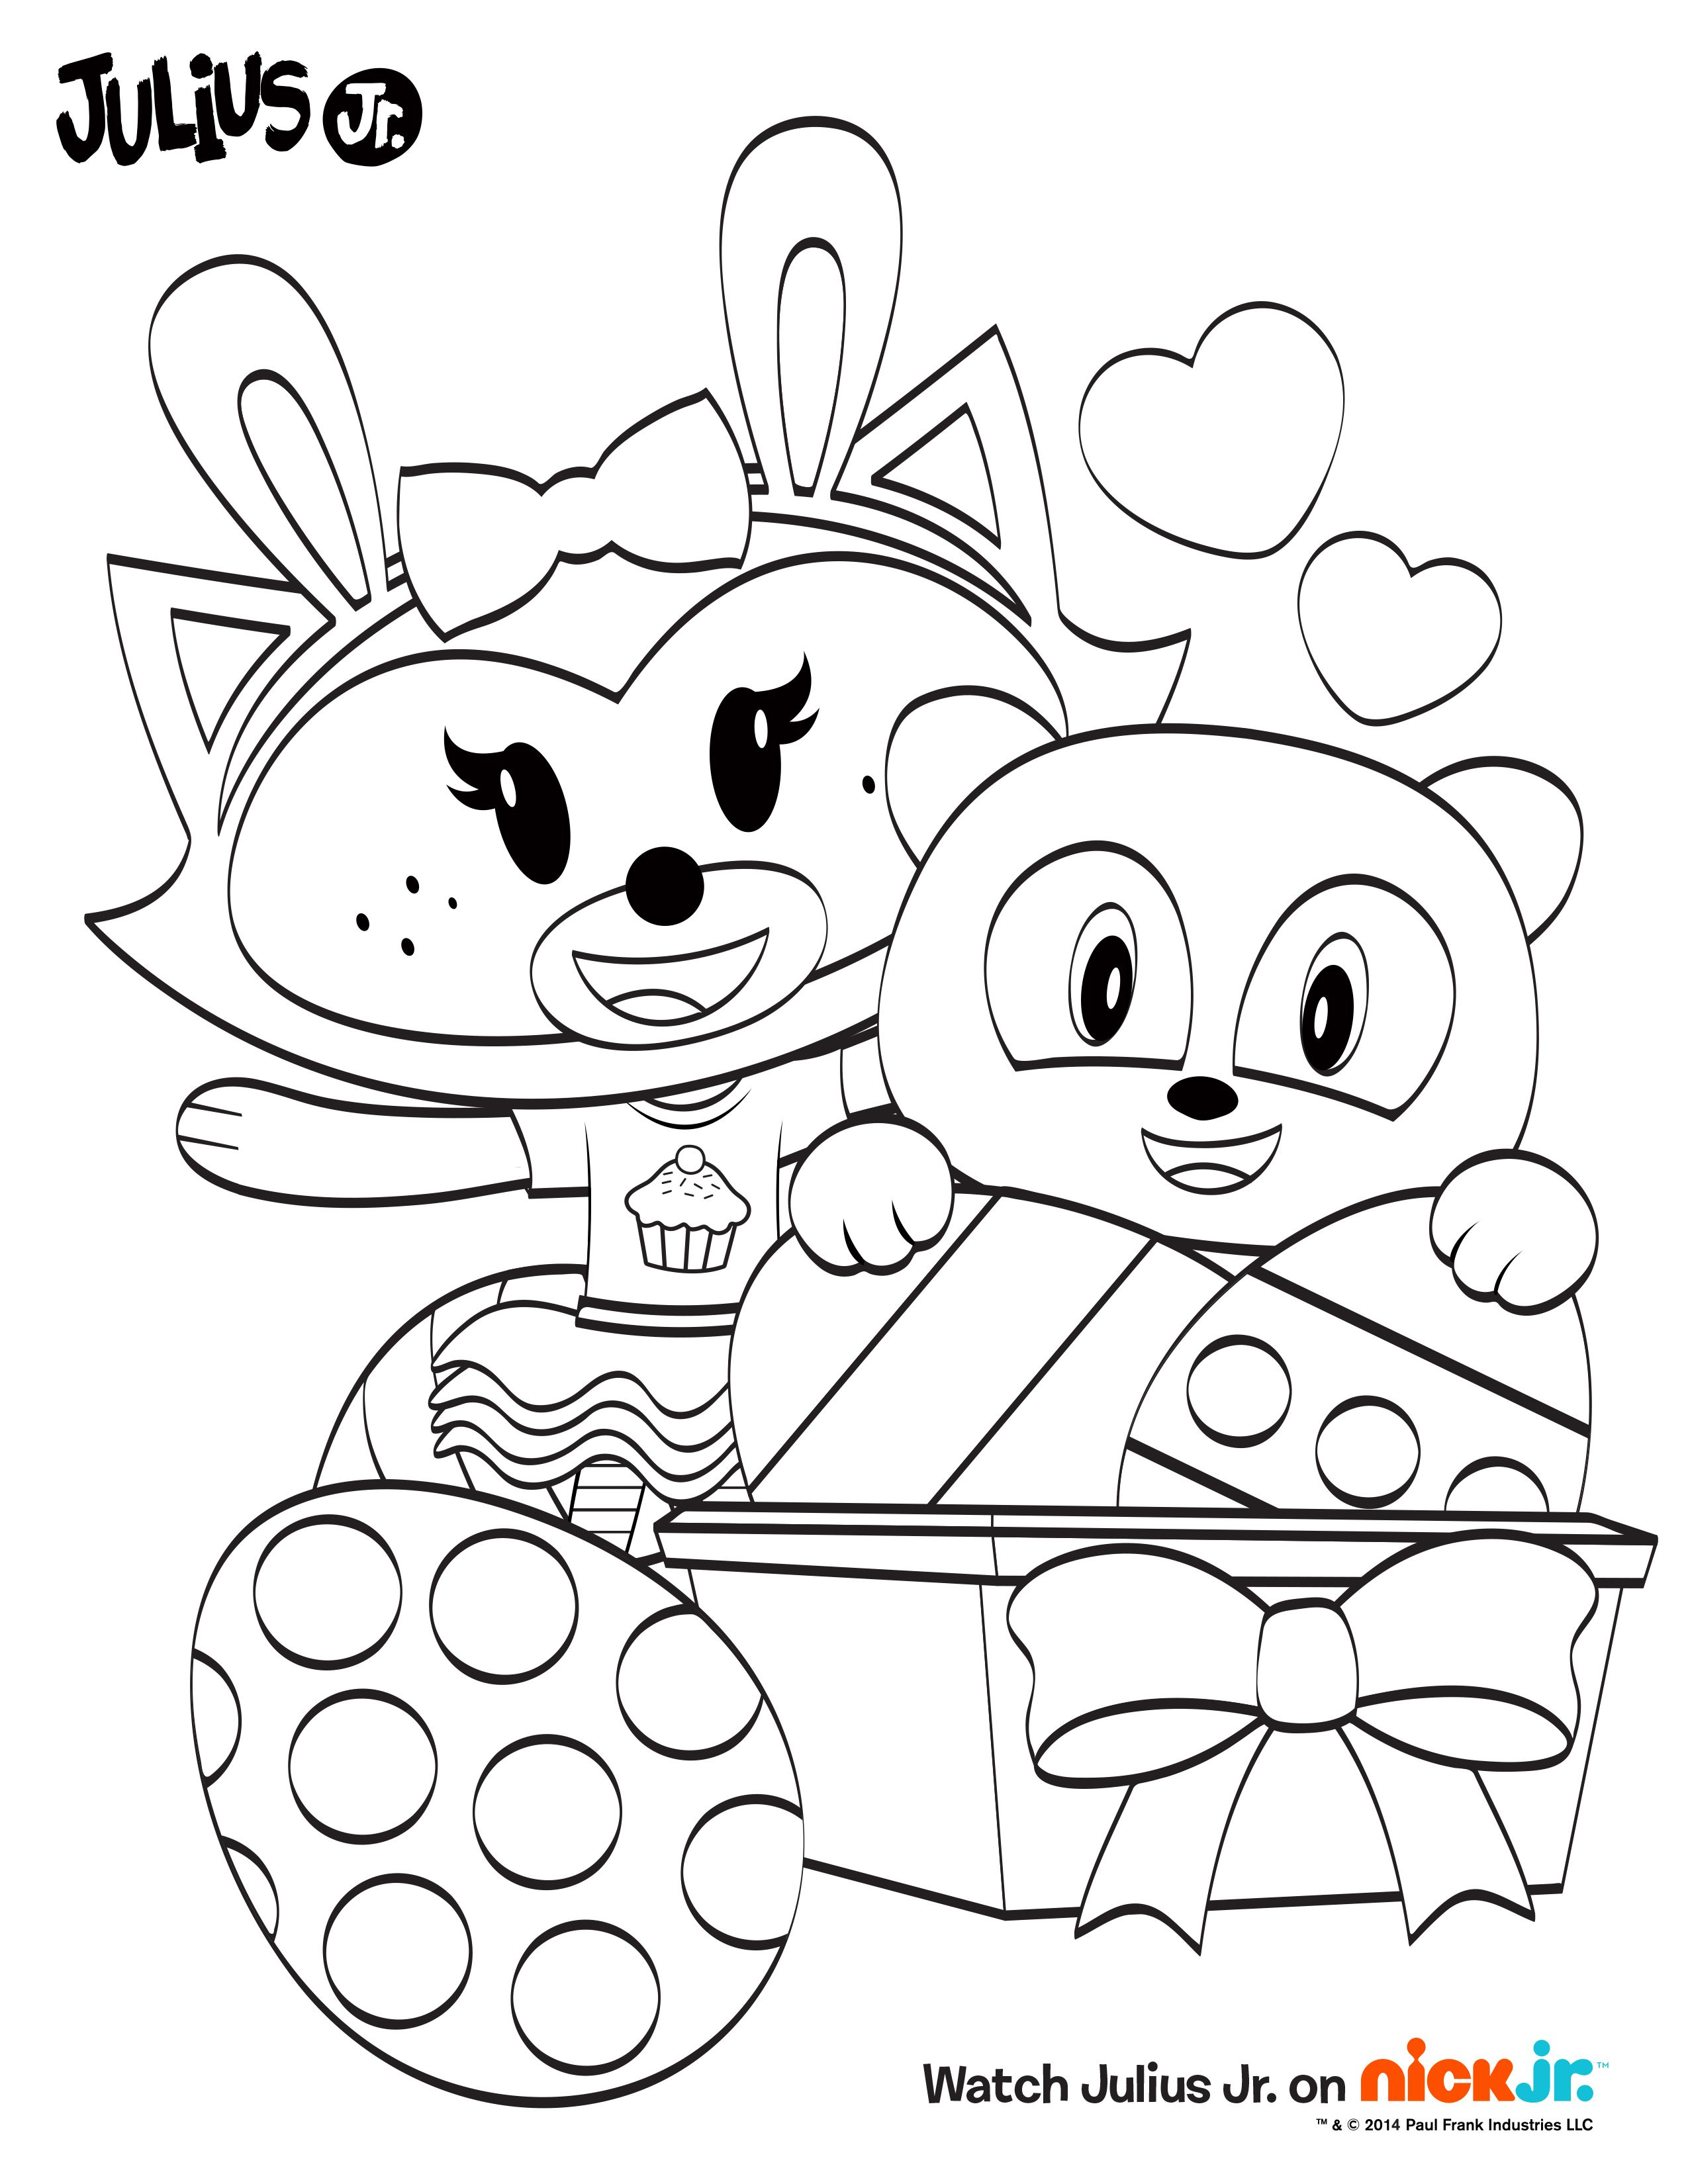 Enjoy This Easter Coloring Activity Easter Printables Free Fun Diy Kids Crafts Easter Colouring